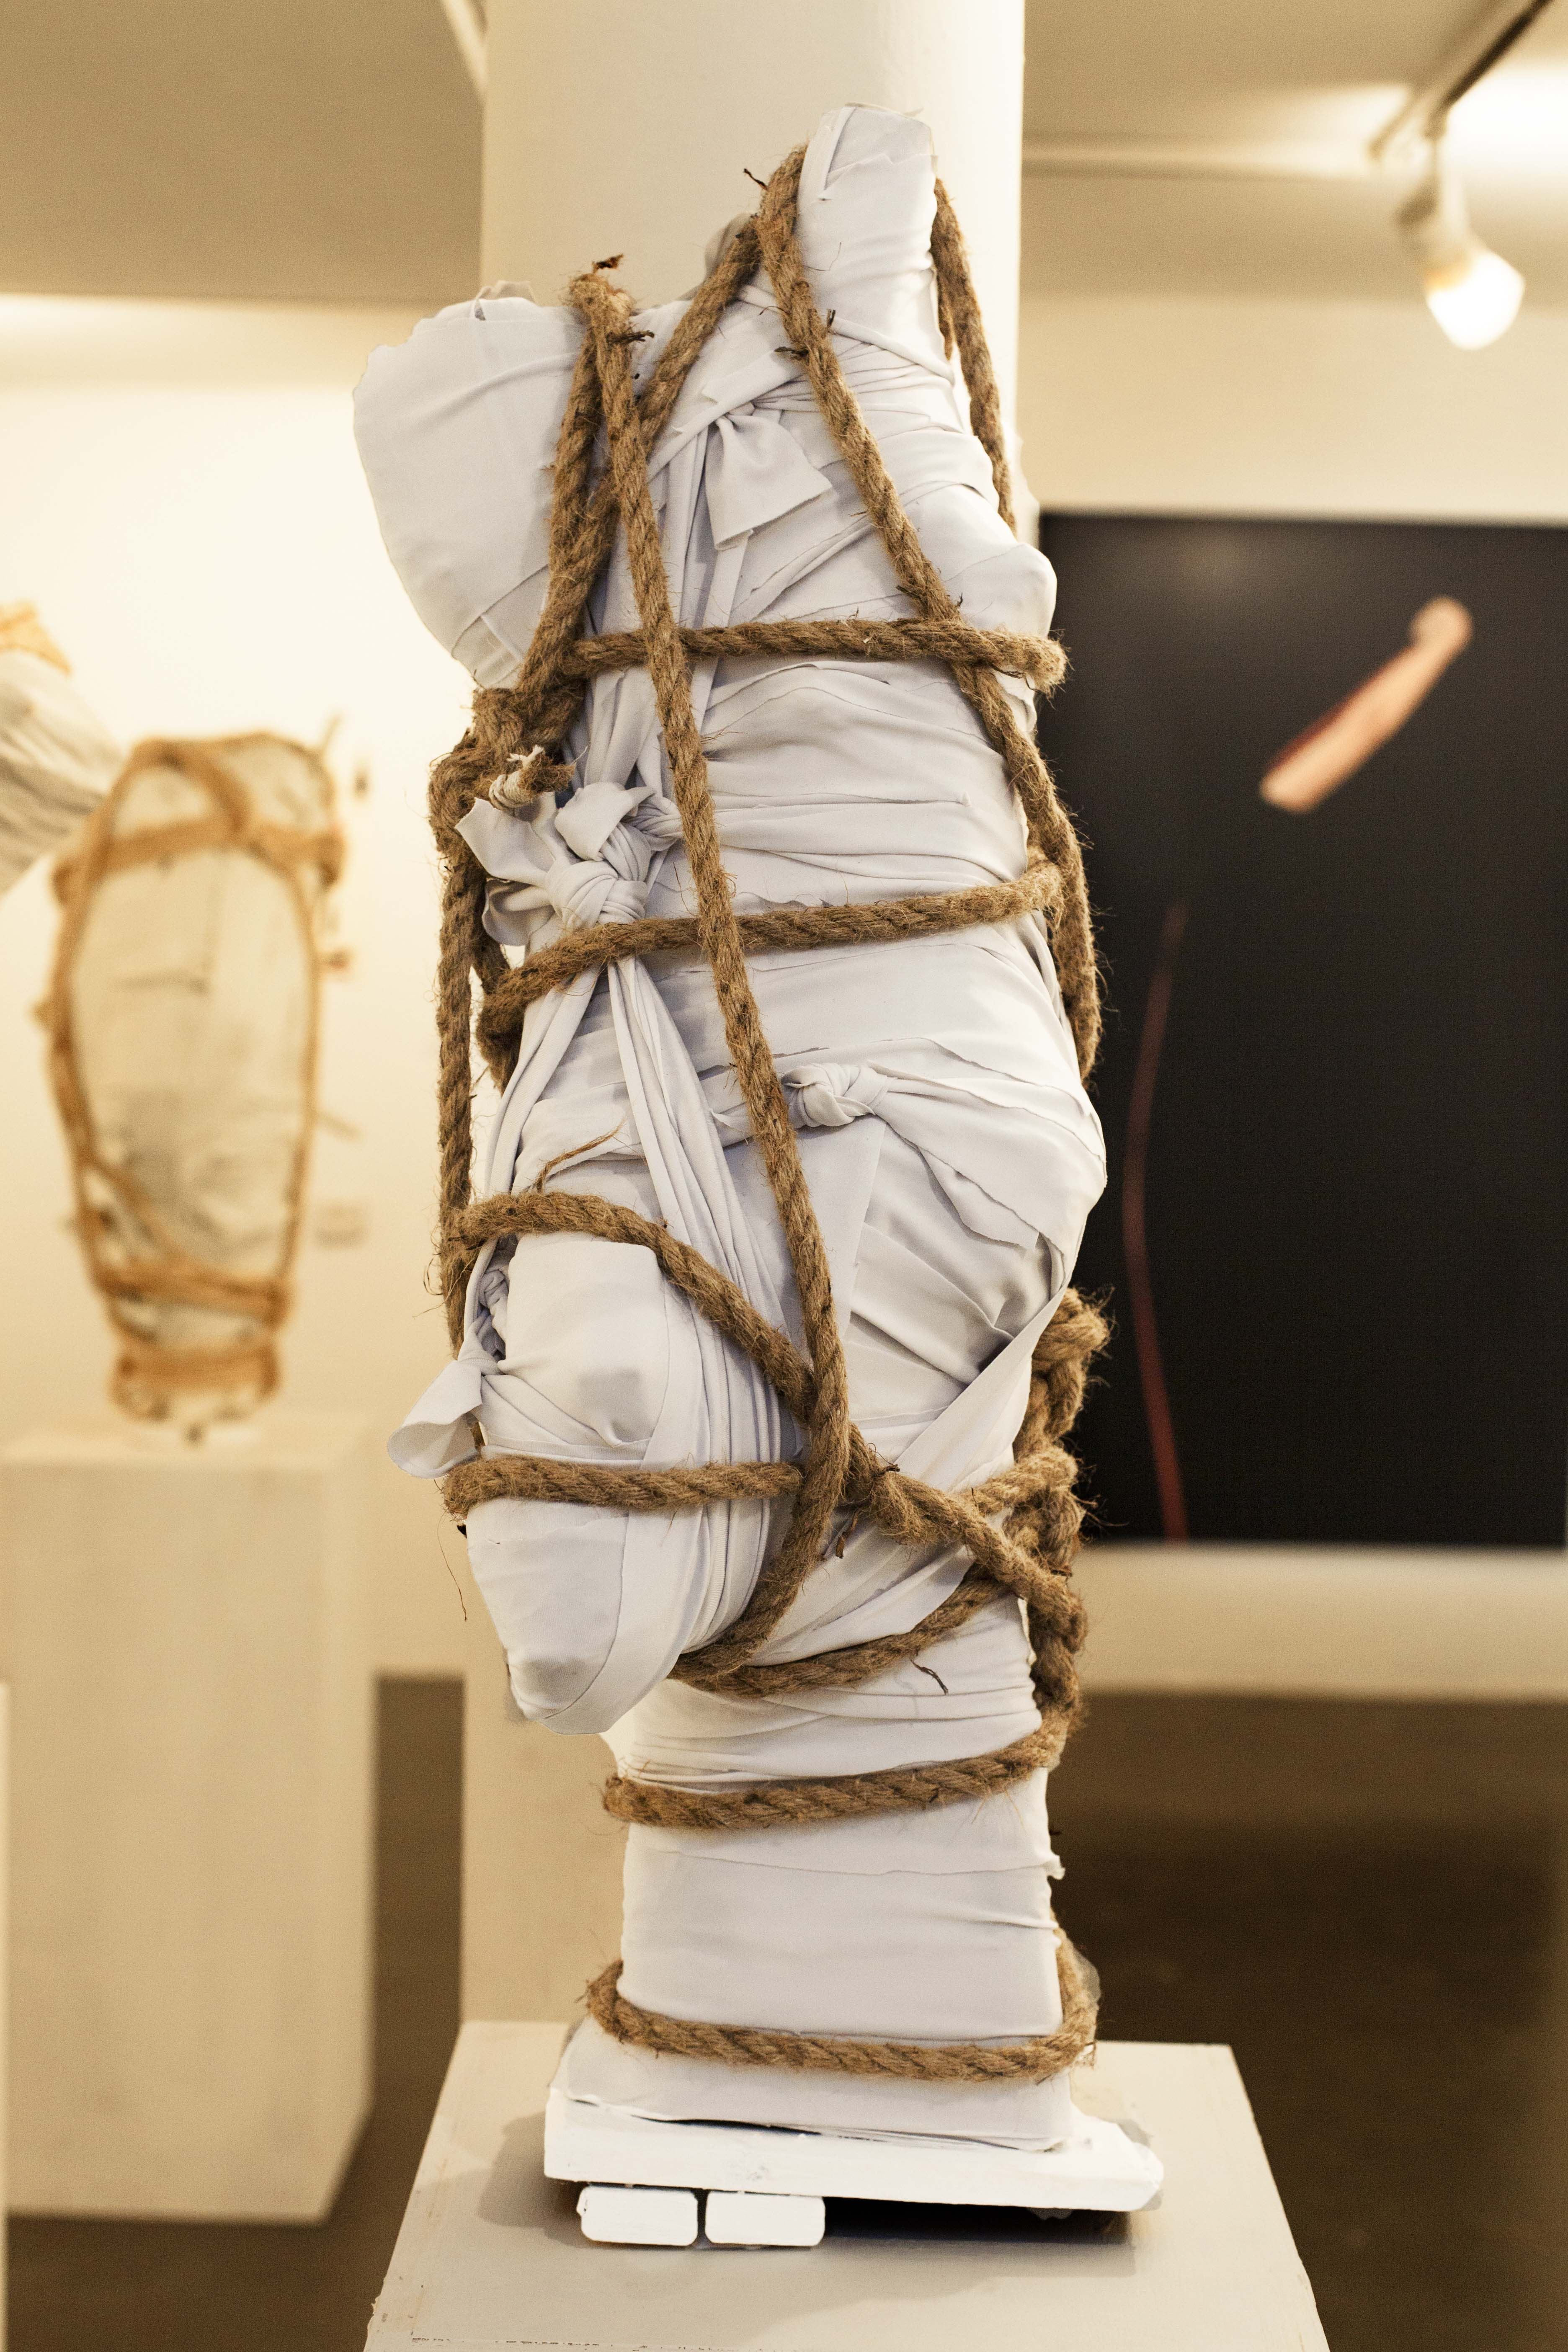 'wrapped' number 2, 2020, 83x40x27  cm',